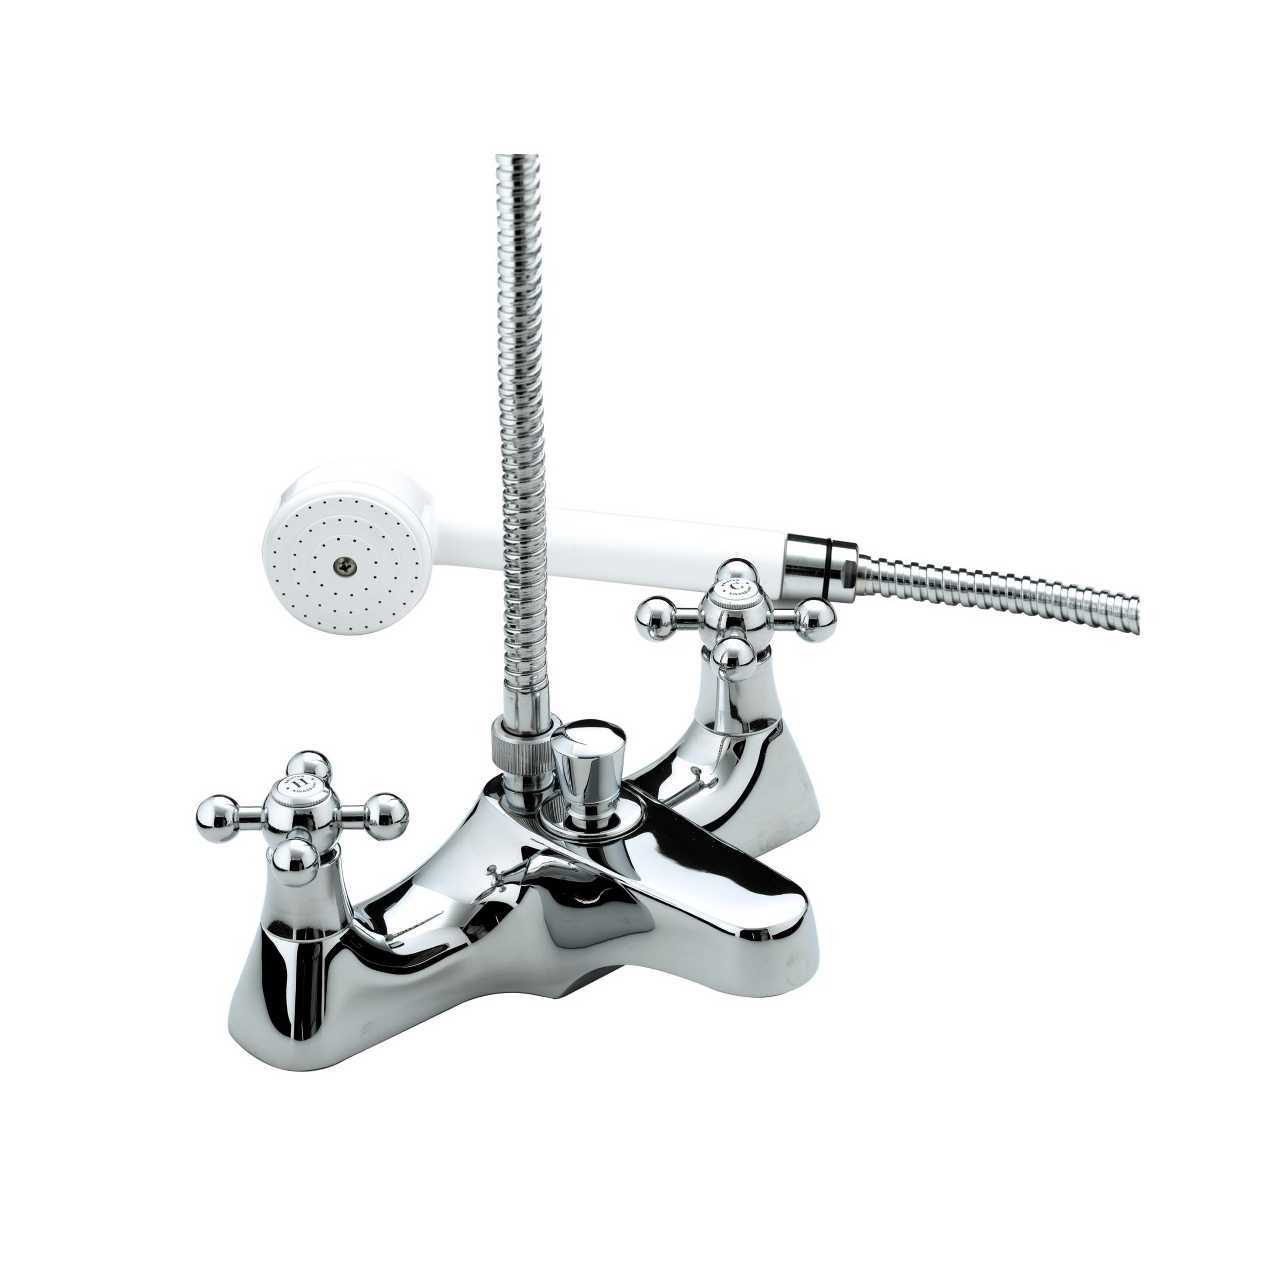 Bristan Regency Chrome Deck Mounted Bath Shower Mixer Tap - R-DBSM-C